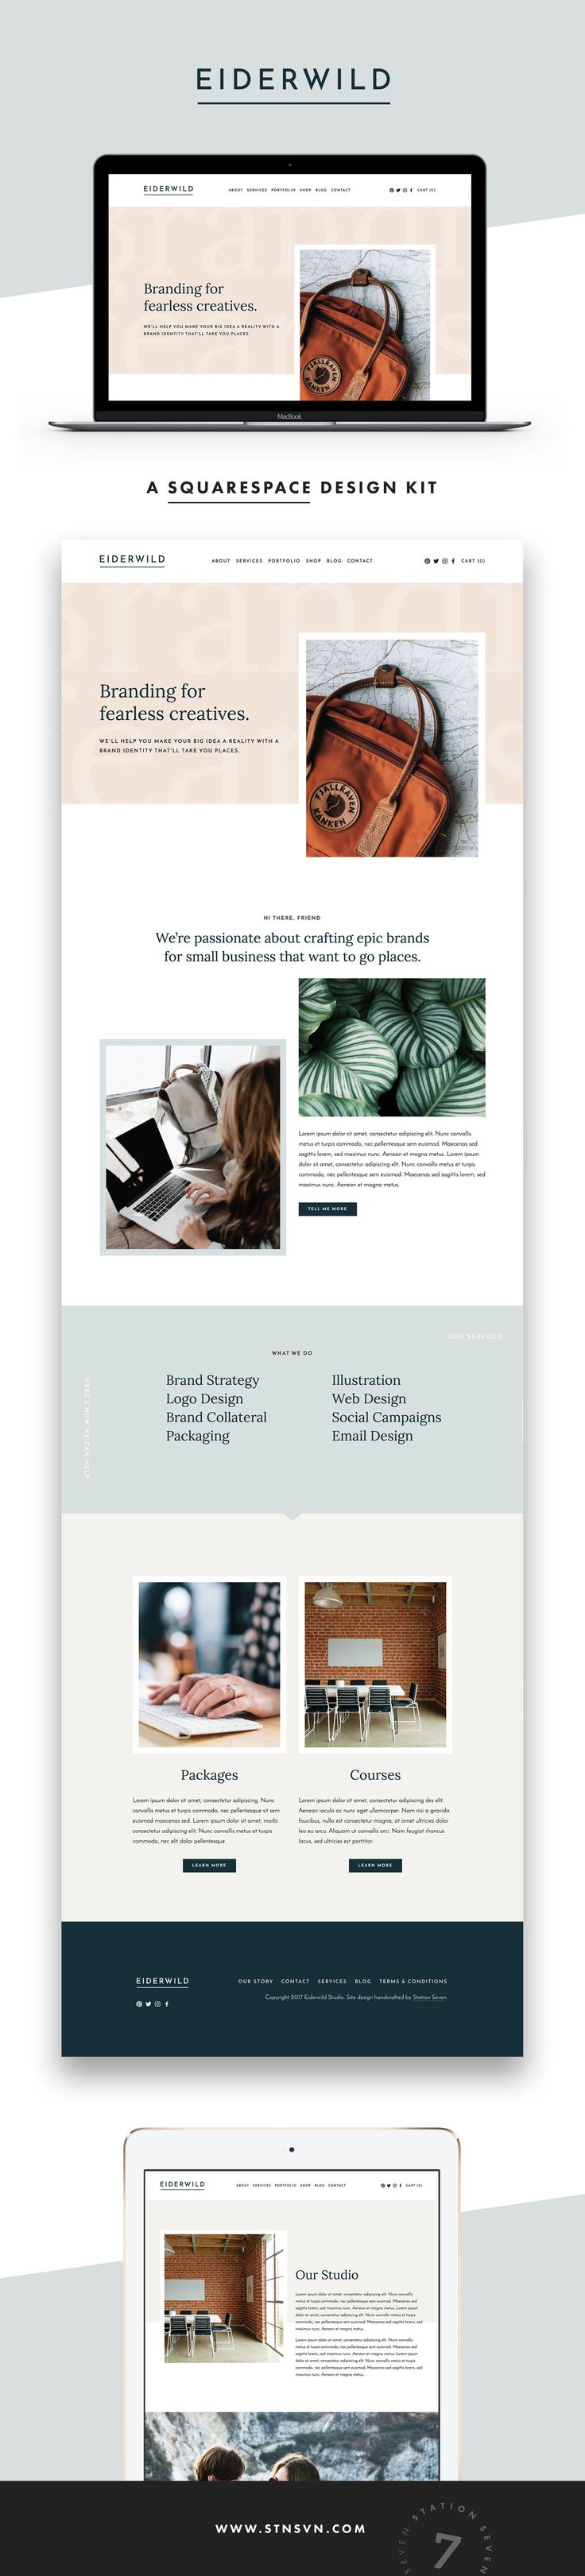 Eiderwild Squarespace Kit - Station Seven WordPress Themes